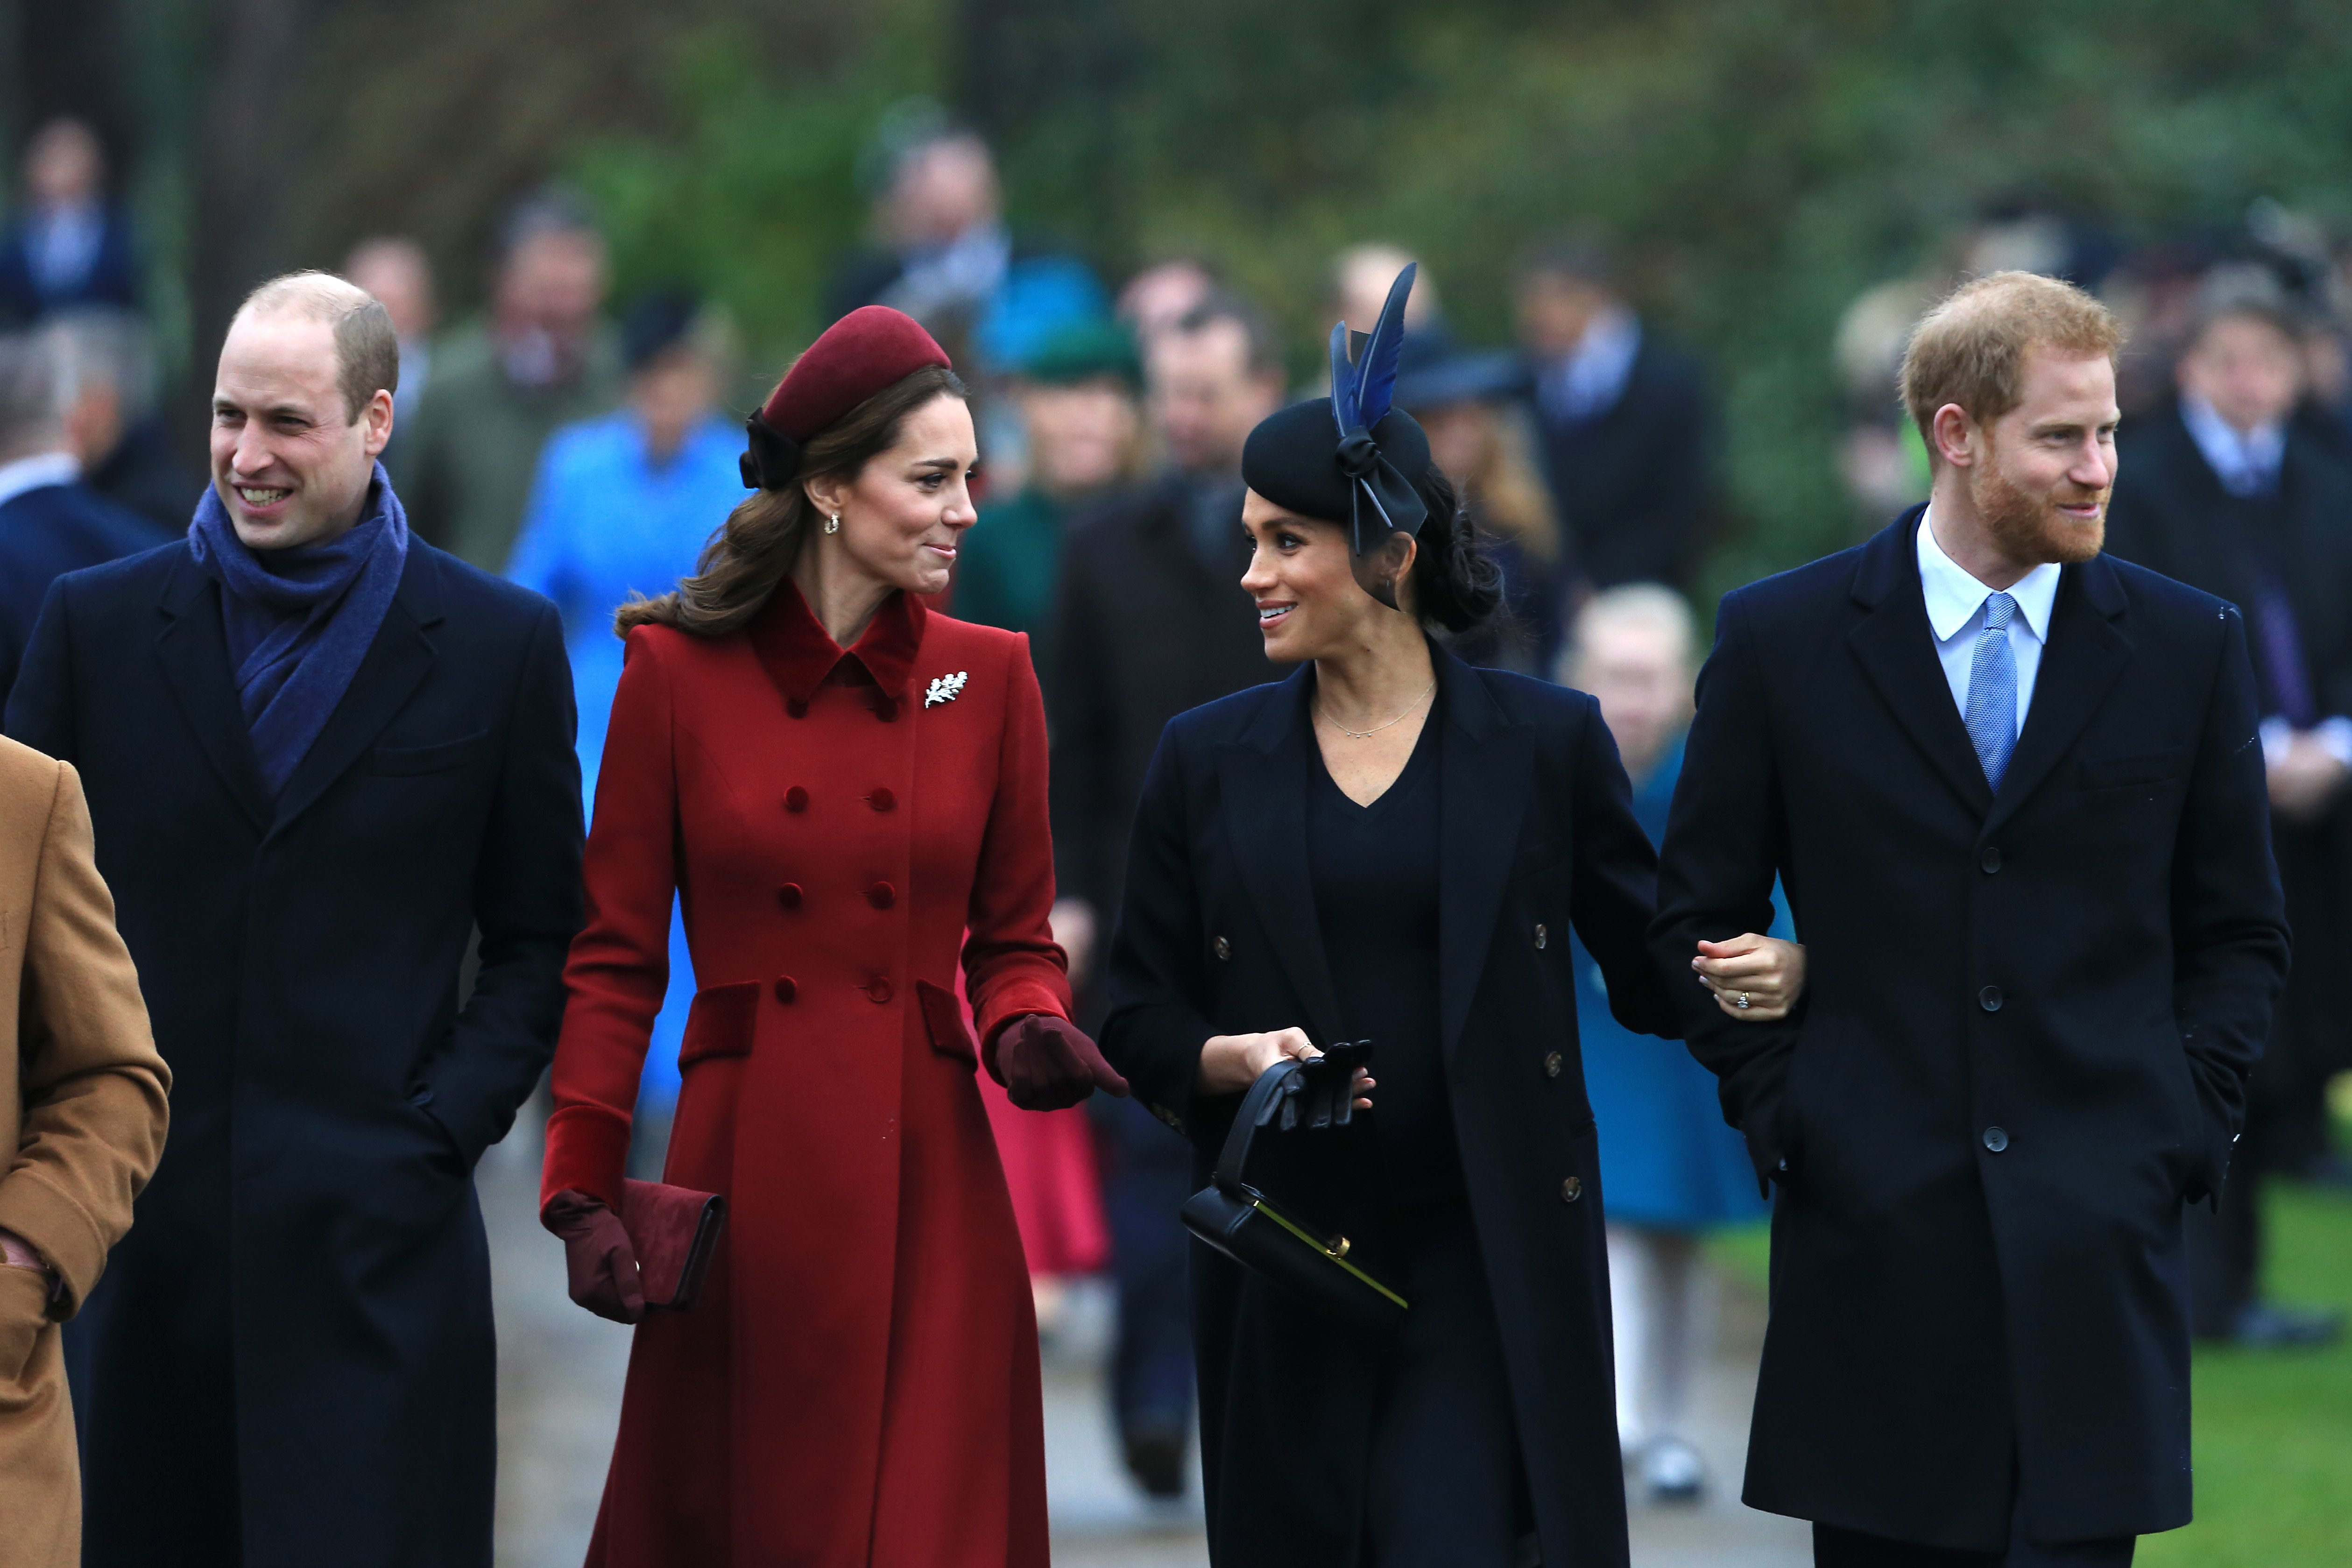 Prince William, Kate Middleton, Meghan Markle and Prince Harry arrive to attend Christmas Day Church service on December 25, 2018 in King's Lynn, England | Photo: Getty Images